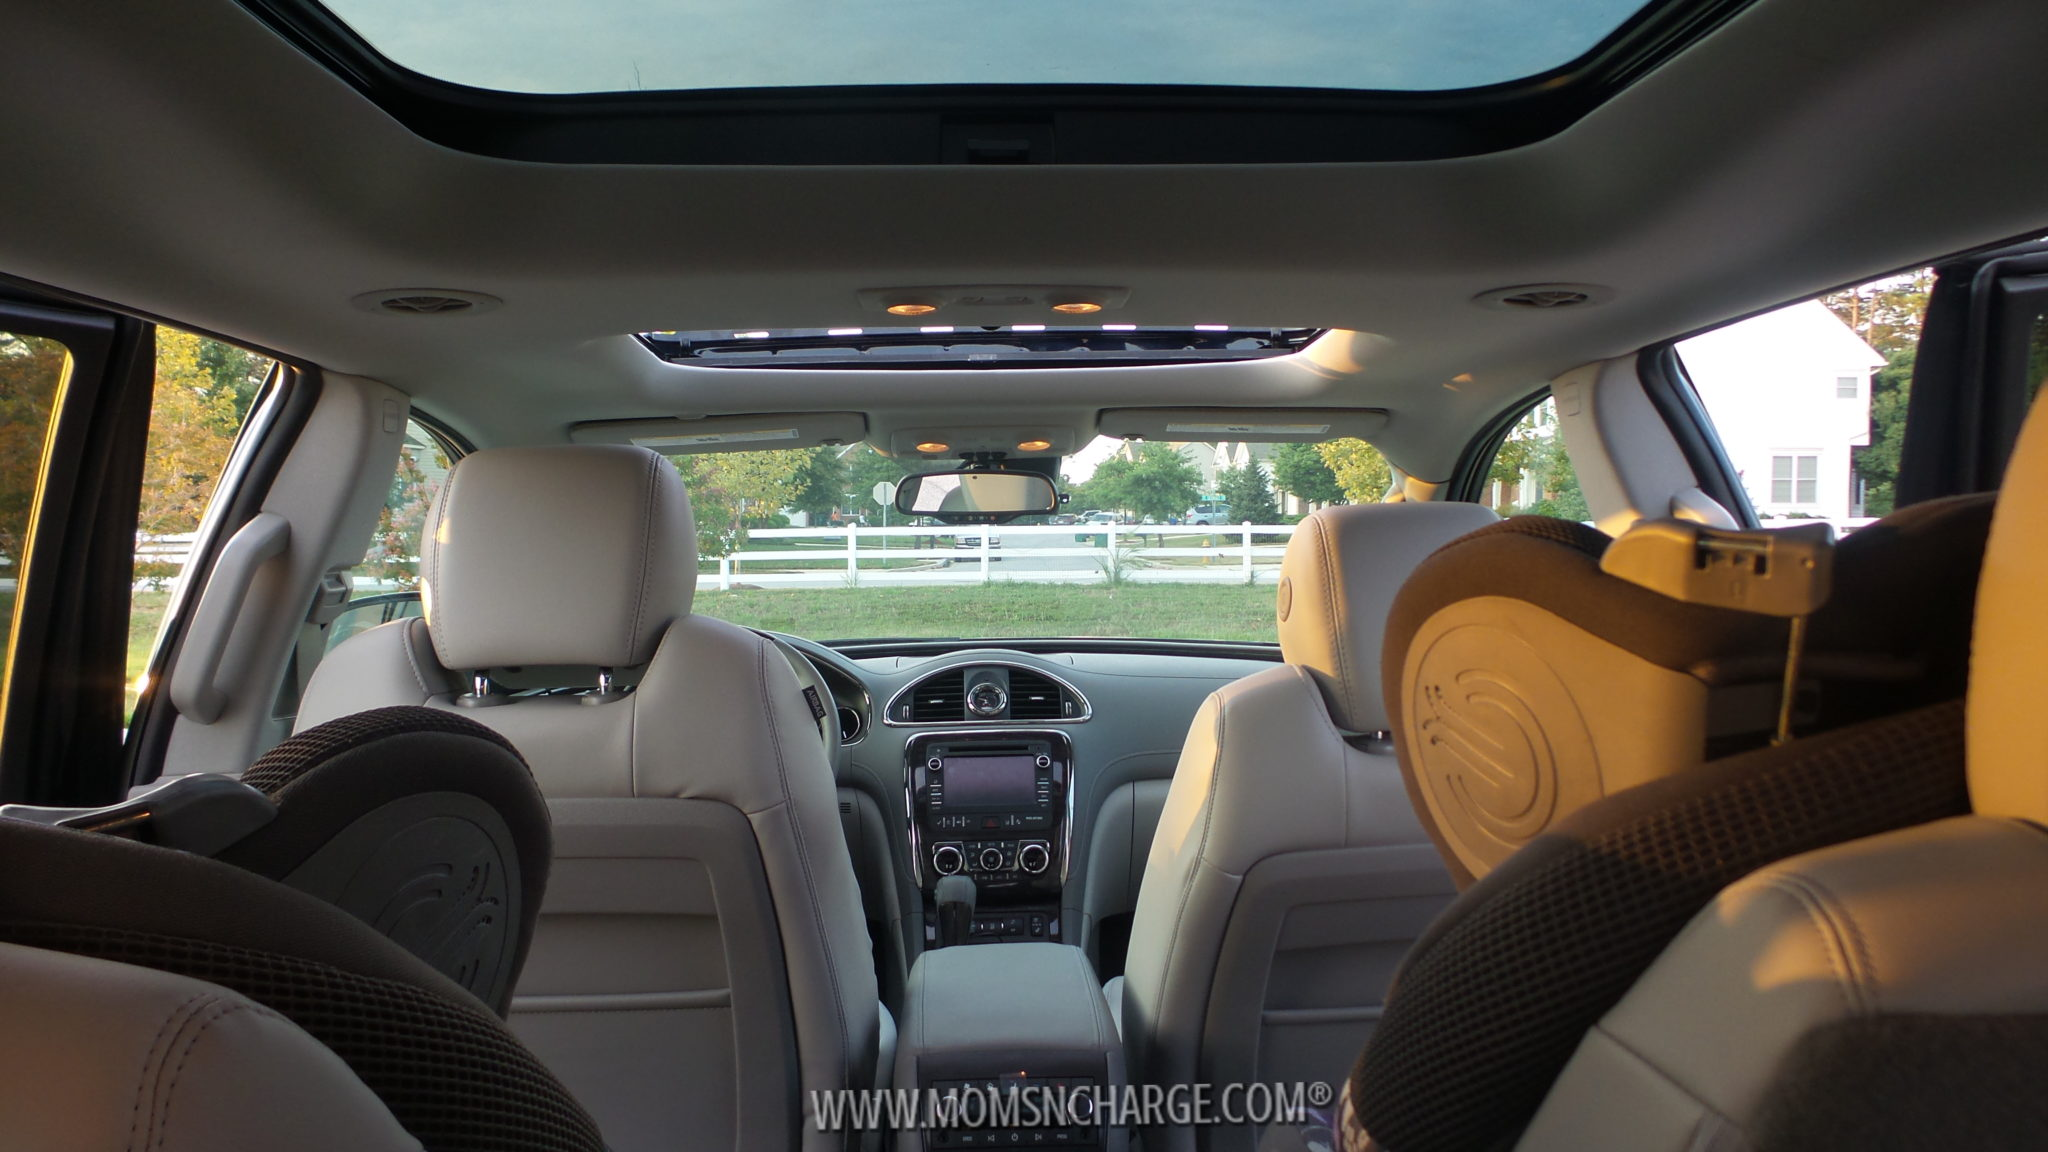 serenity review first auto roadshow enclave buick enclaves preview now take